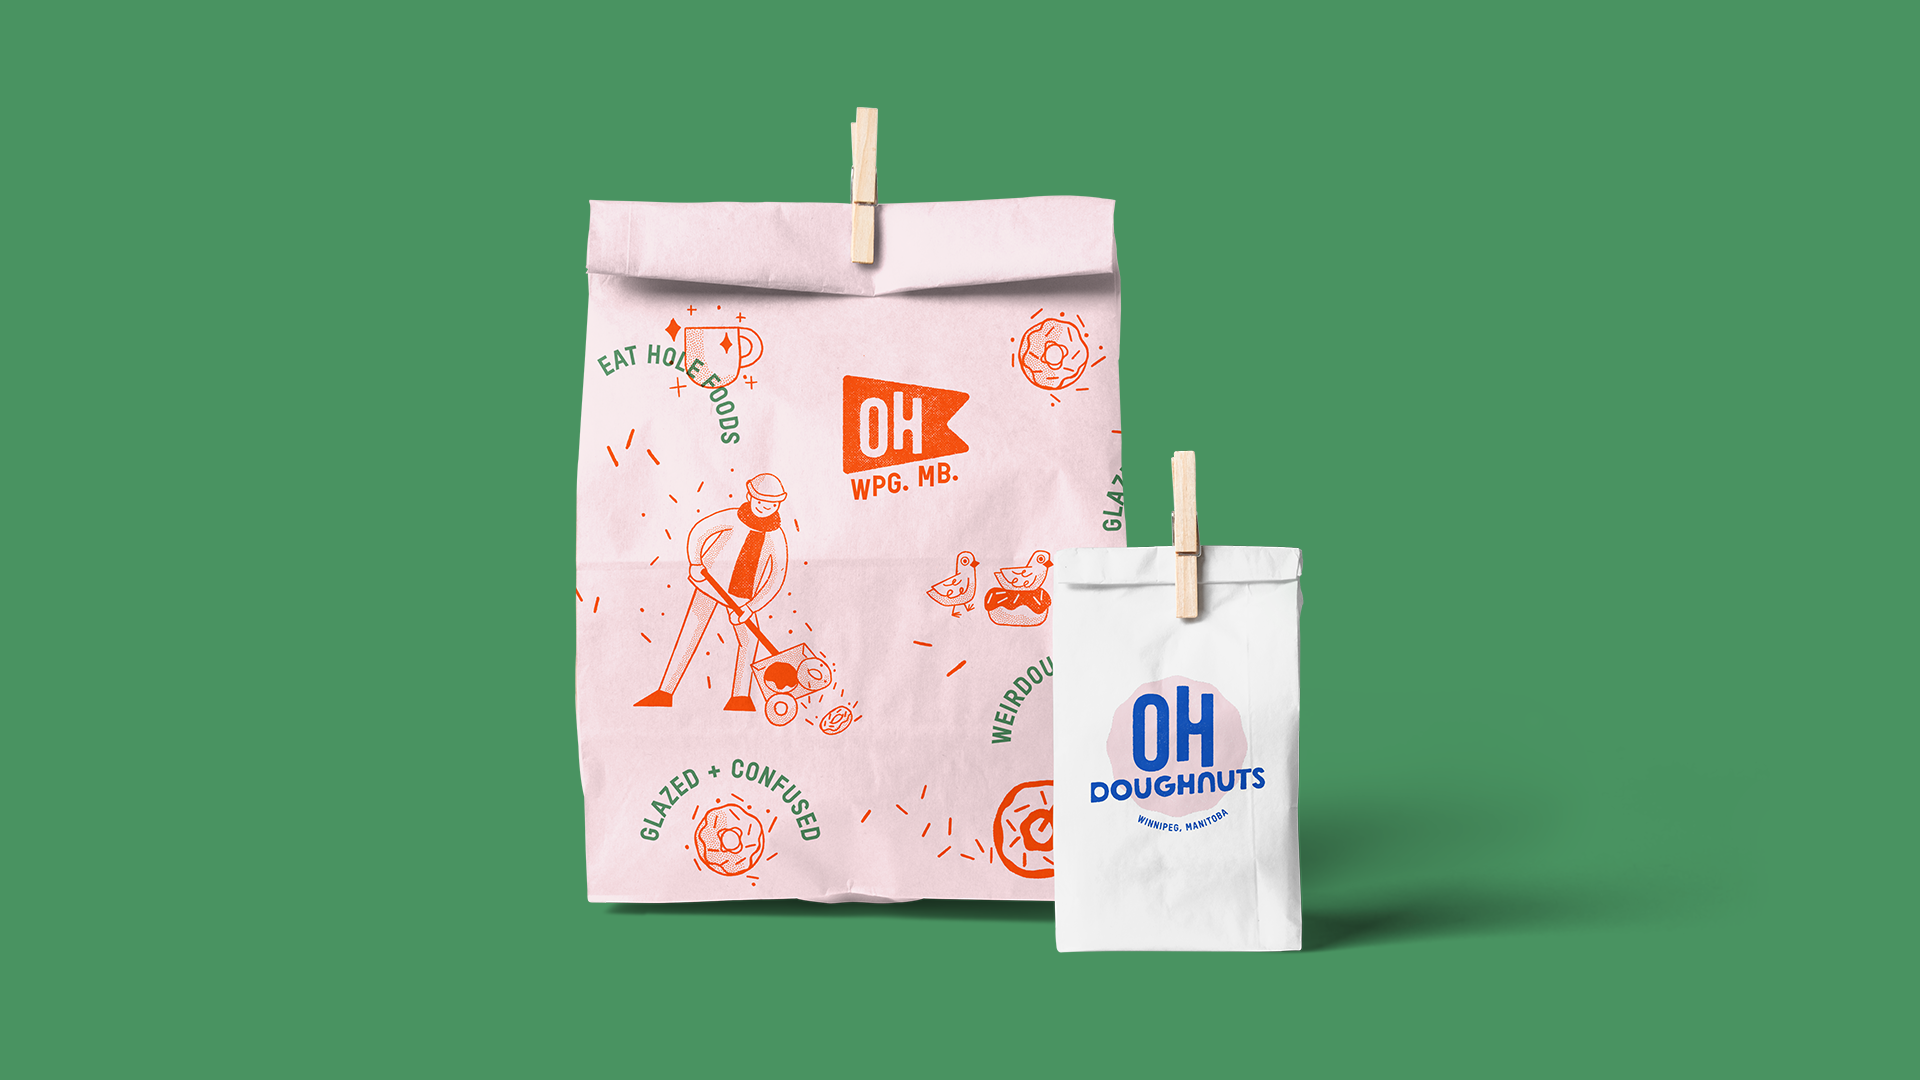 """Two doughnut bag designs. The larger one is pink with red and green type and illustrations. The type content is an assortment of doughnut puns like """"Glazed and Confused"""" and others. Illustrations include a man shovelling doughnuts, a pigeon in a doughnut nest, and a girl riding a doughnut bike. The small bag features the Oh Doughnuts logo in pink and blue on a white bag."""